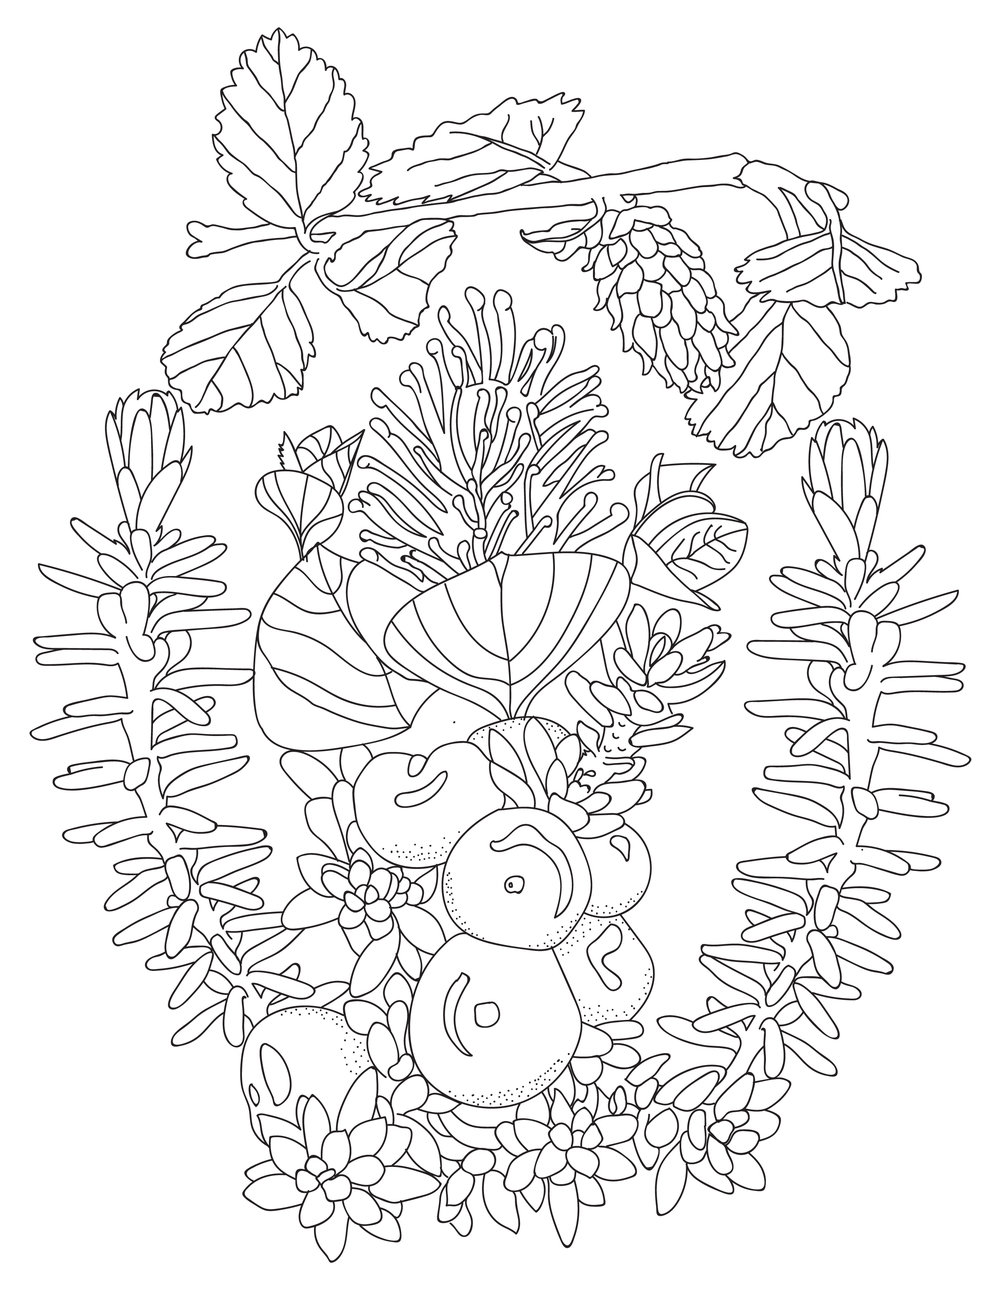 Arctic Plants Colouring sheets-02.jpg